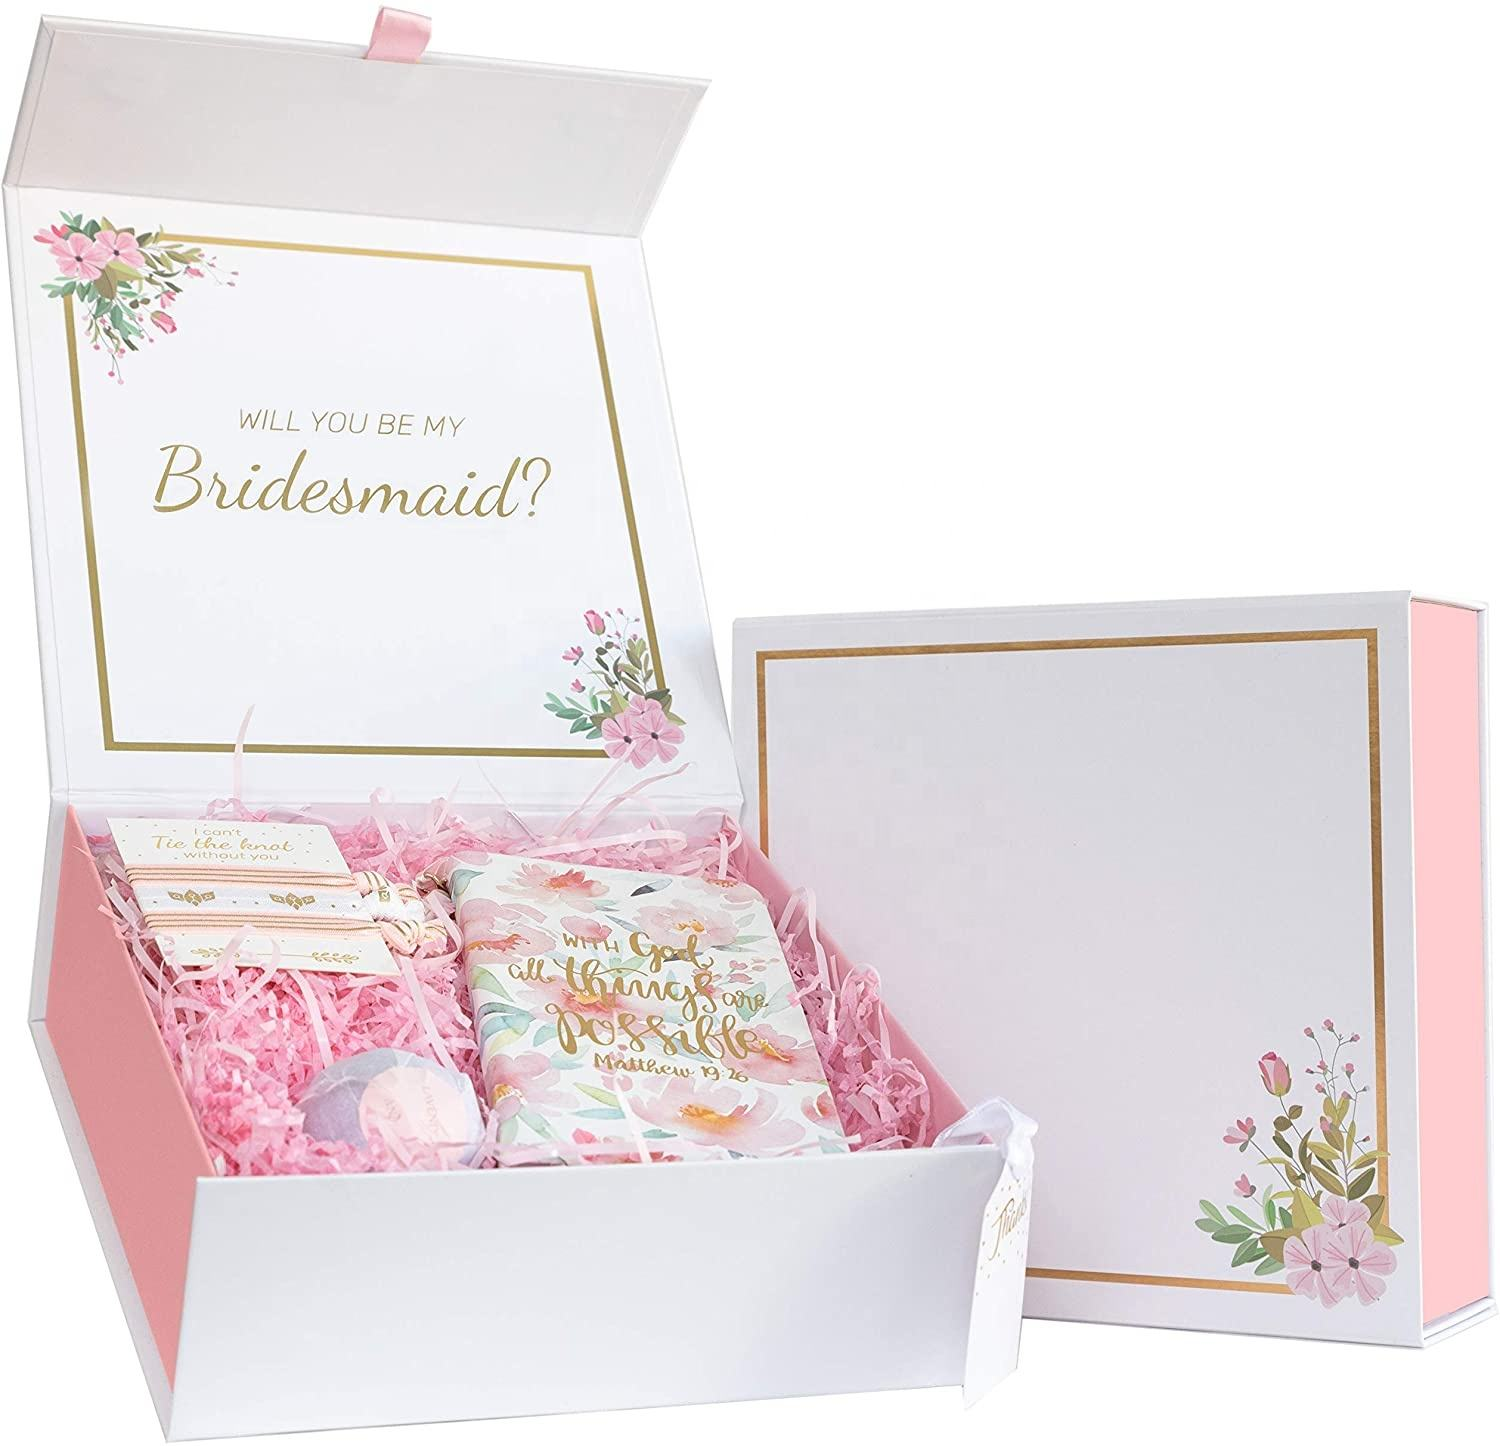 Pink floral bridesmaid proposal box elegant high end boxes will you be my bridesmaid